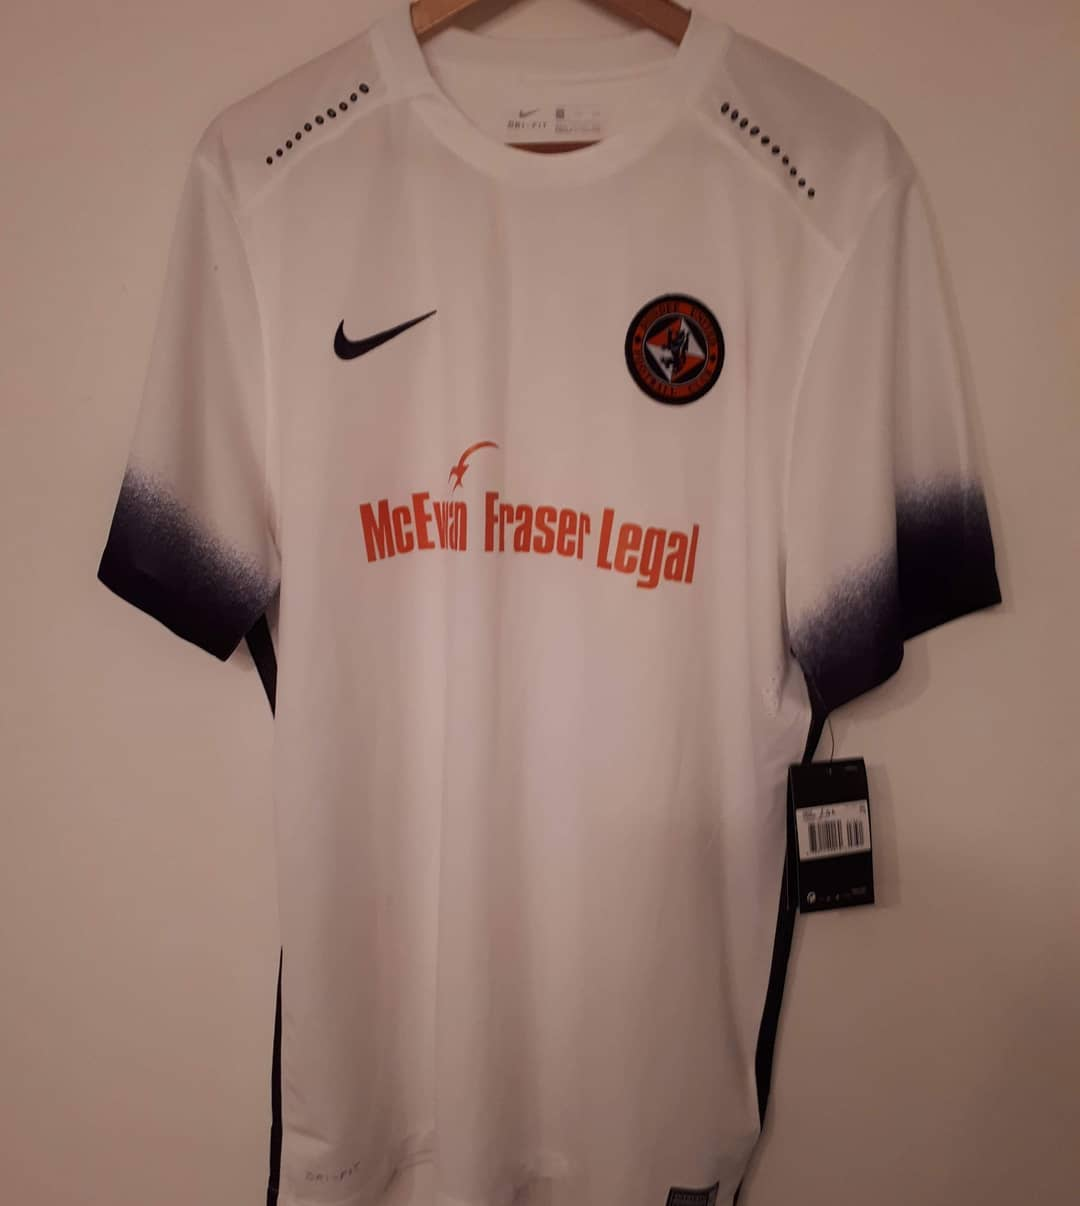 Dundee United Away 2016/2017 Football Shirt. Club Football Shirts.